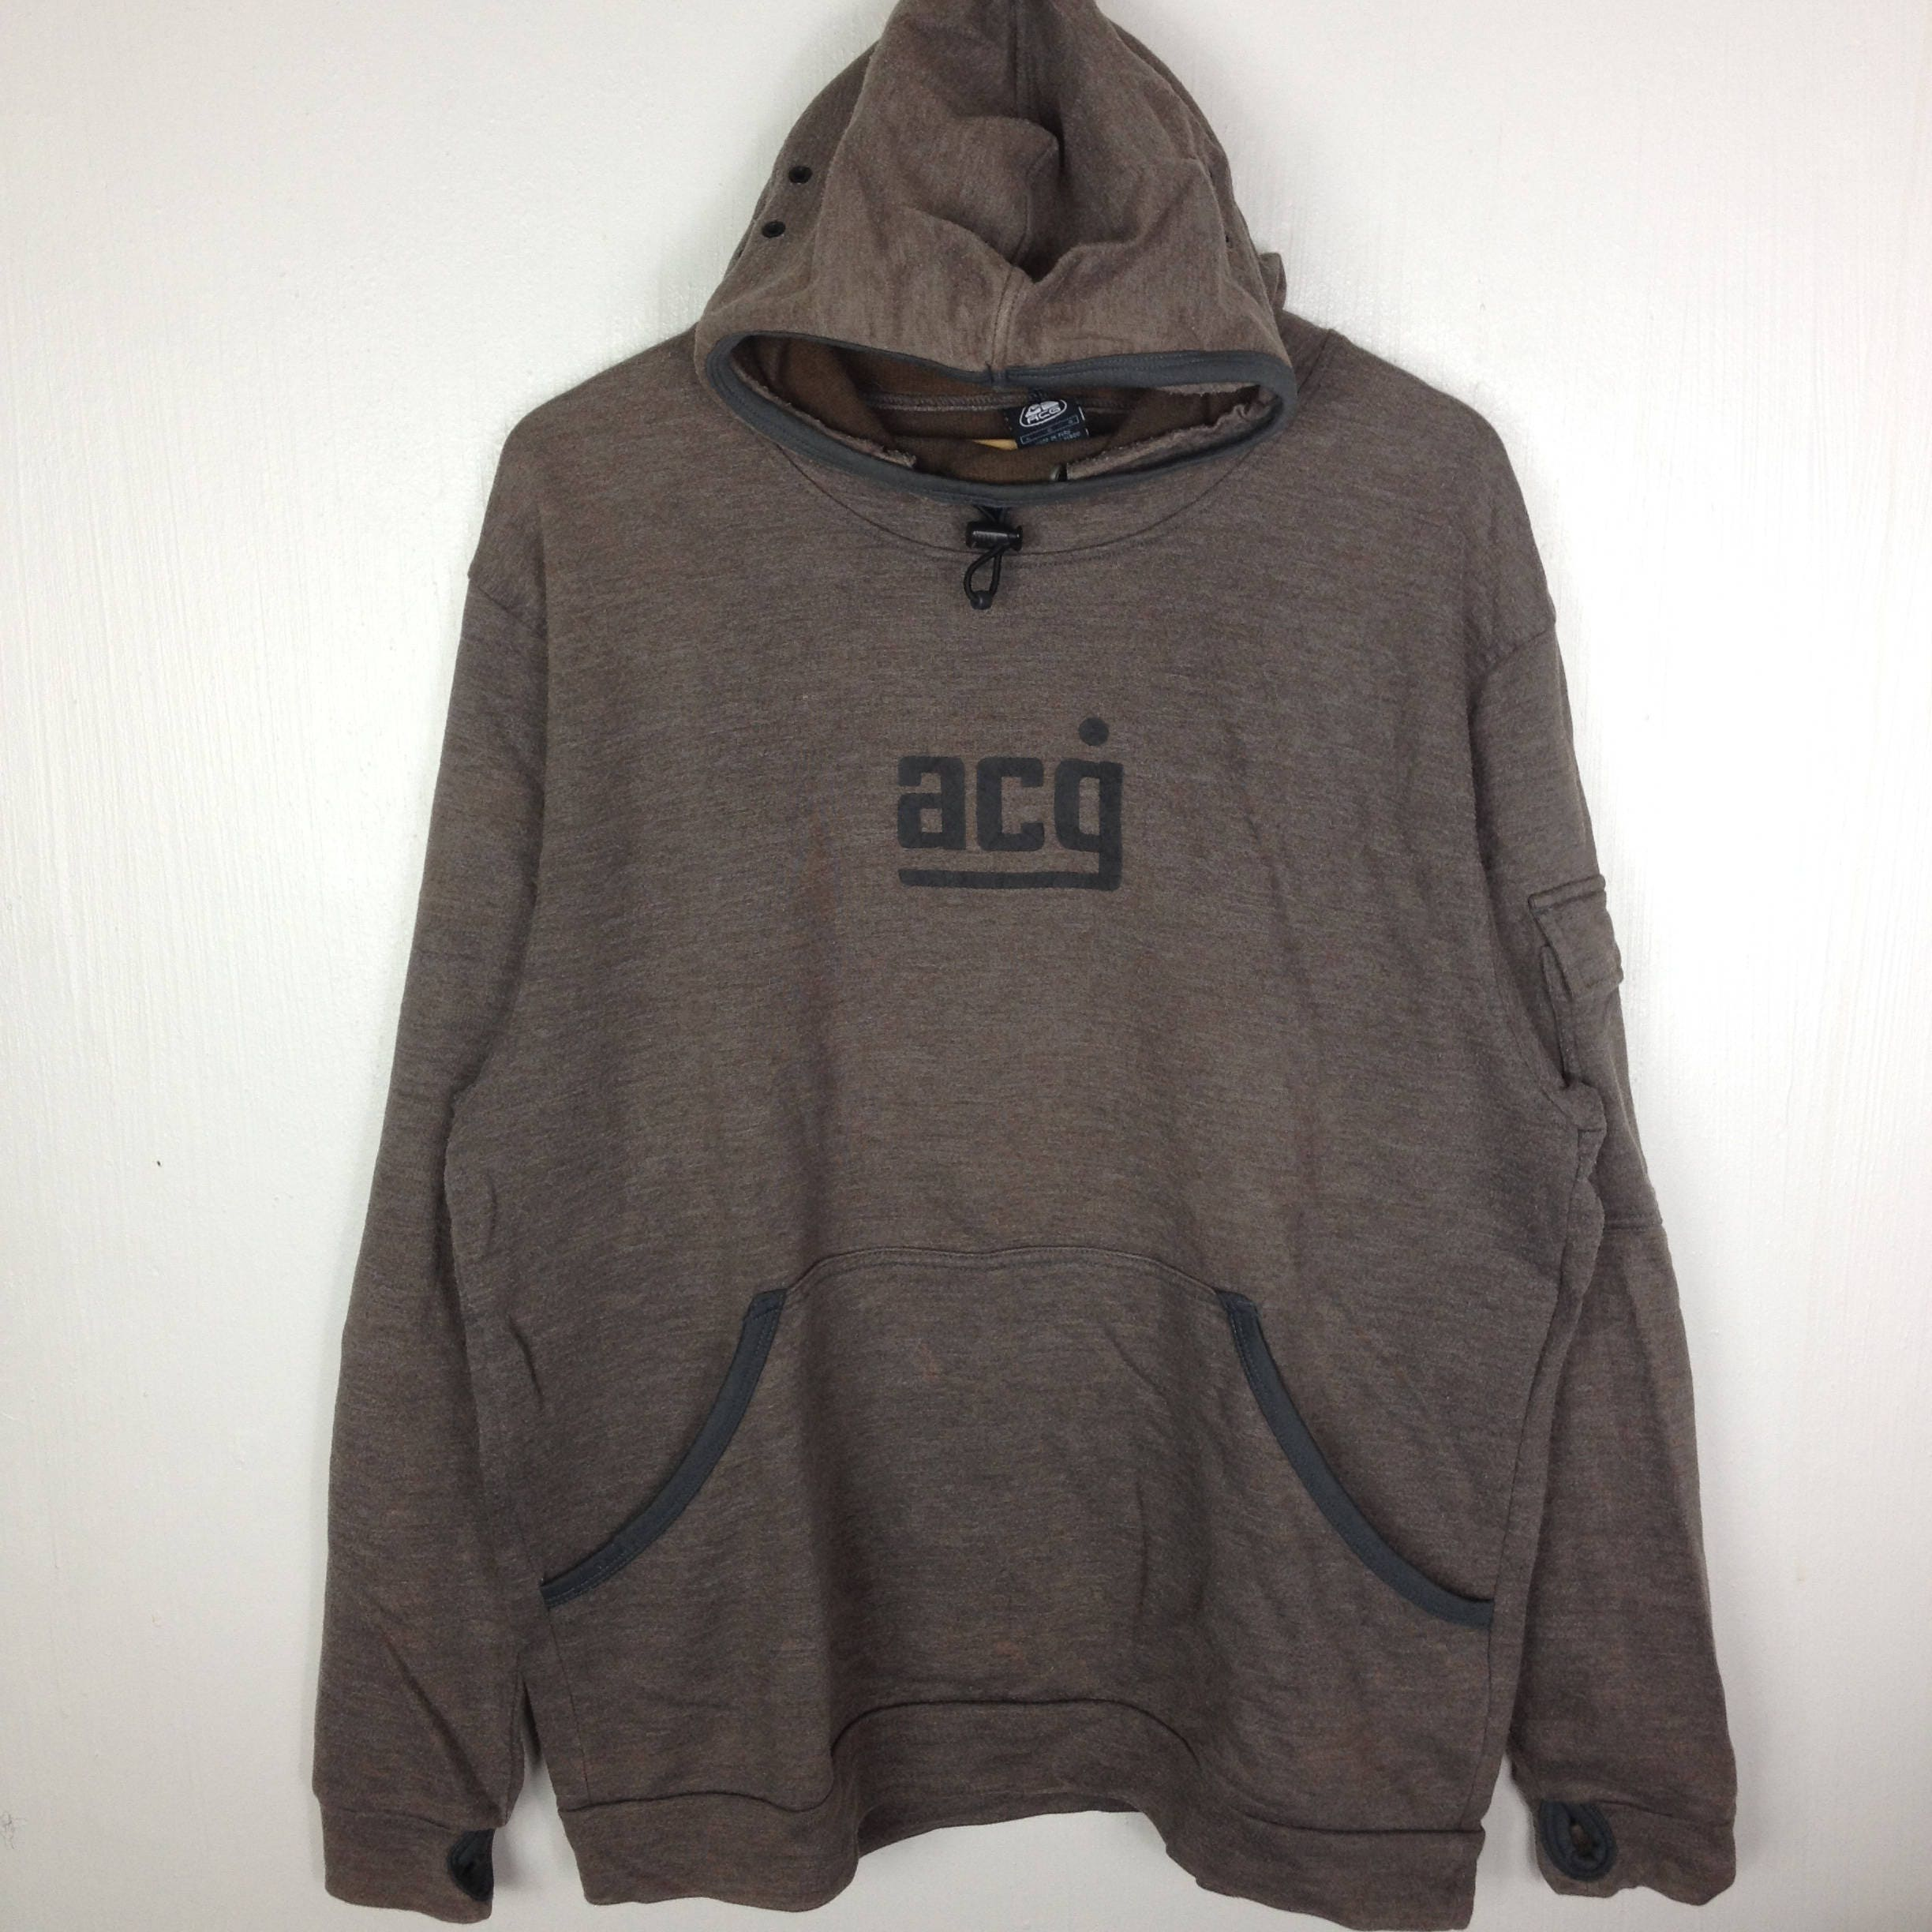 NIKE ACG All Conditions Gear Brown Hoodie Sweatshirt Large  46a4e218fdf3